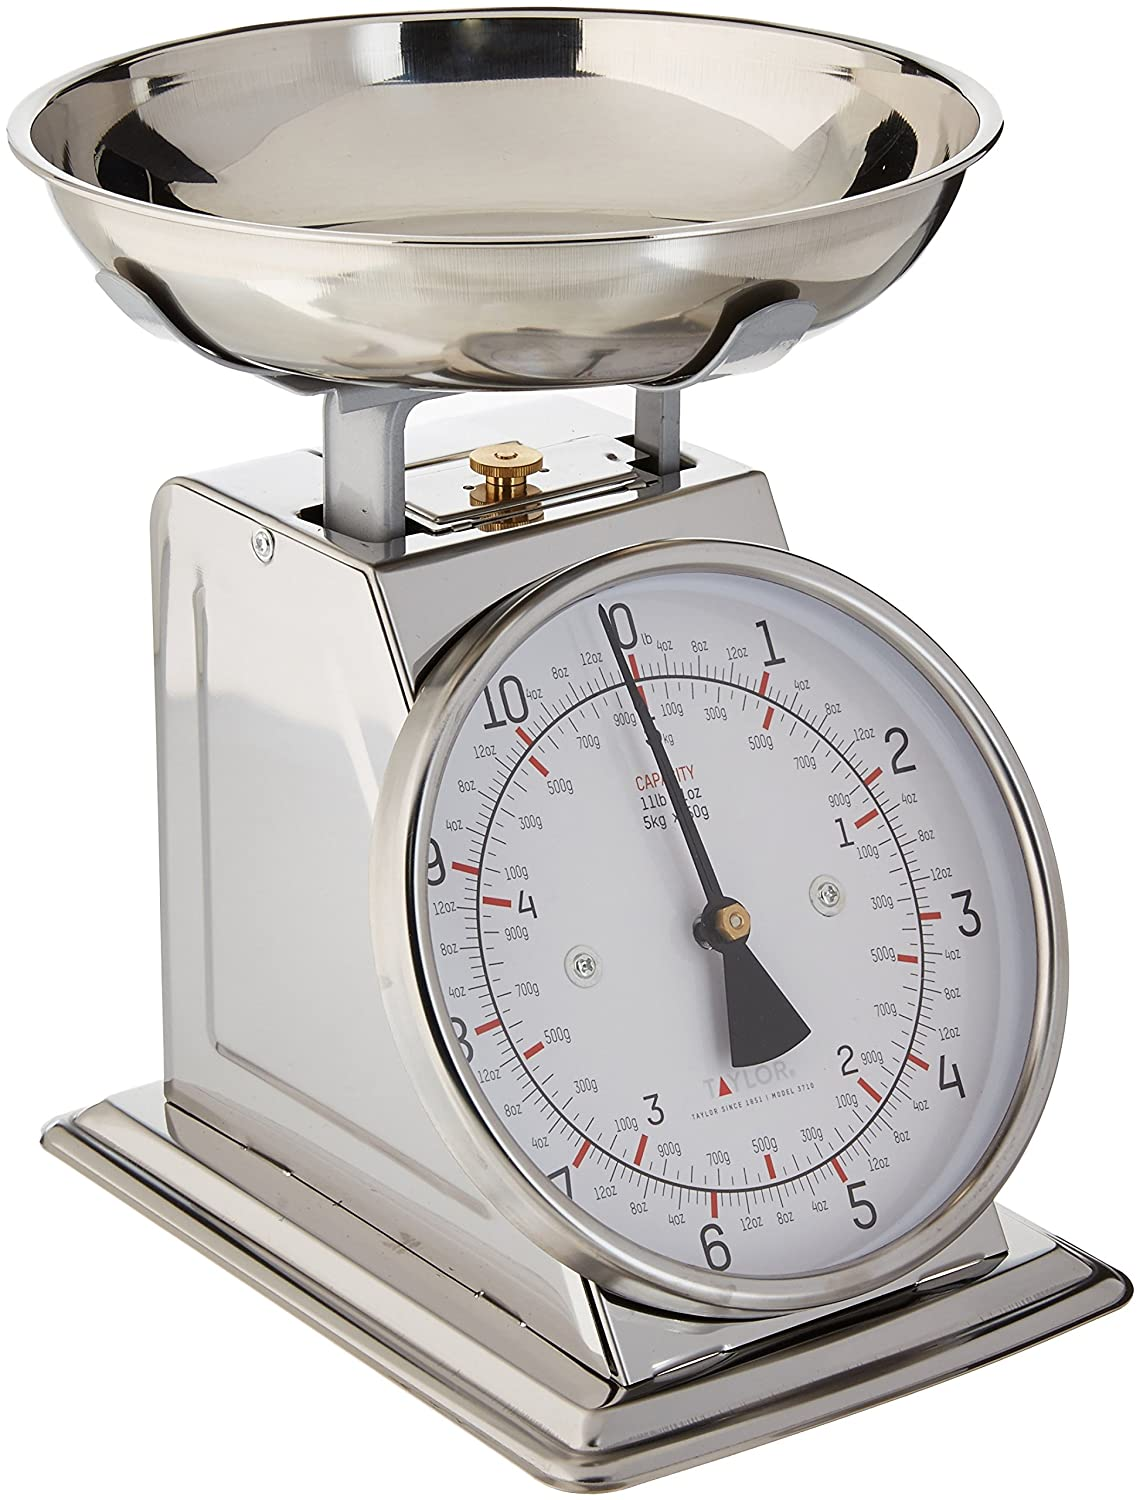 Taylor Stainless Steel Analog Kitchen Scale, 11 Lb. Capacity Taylor Thermometers 3710-21